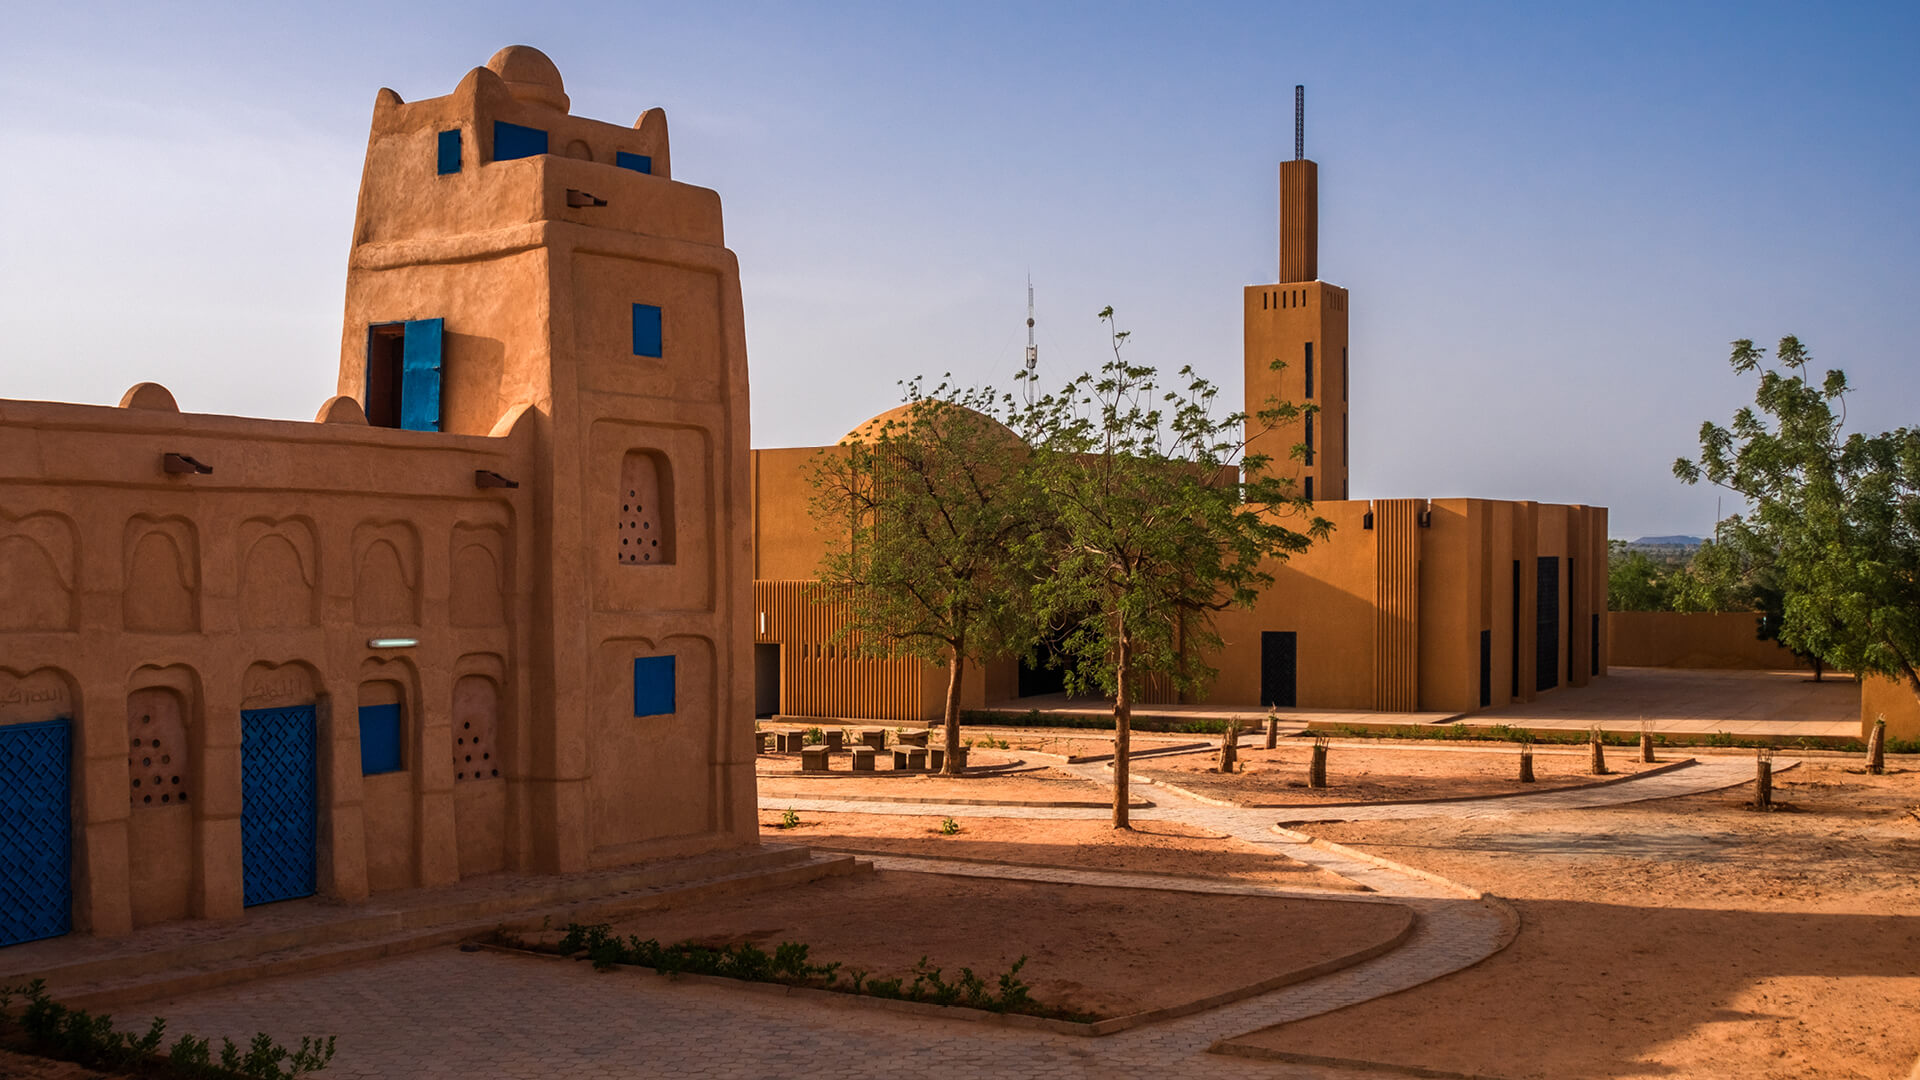 Hikma - a culture and education hub in Niger where the secular and religious peacefully co-exist to cultivate minds and strengthen the community | Yasaman Esmaili | Studio Chahar | STIRworld